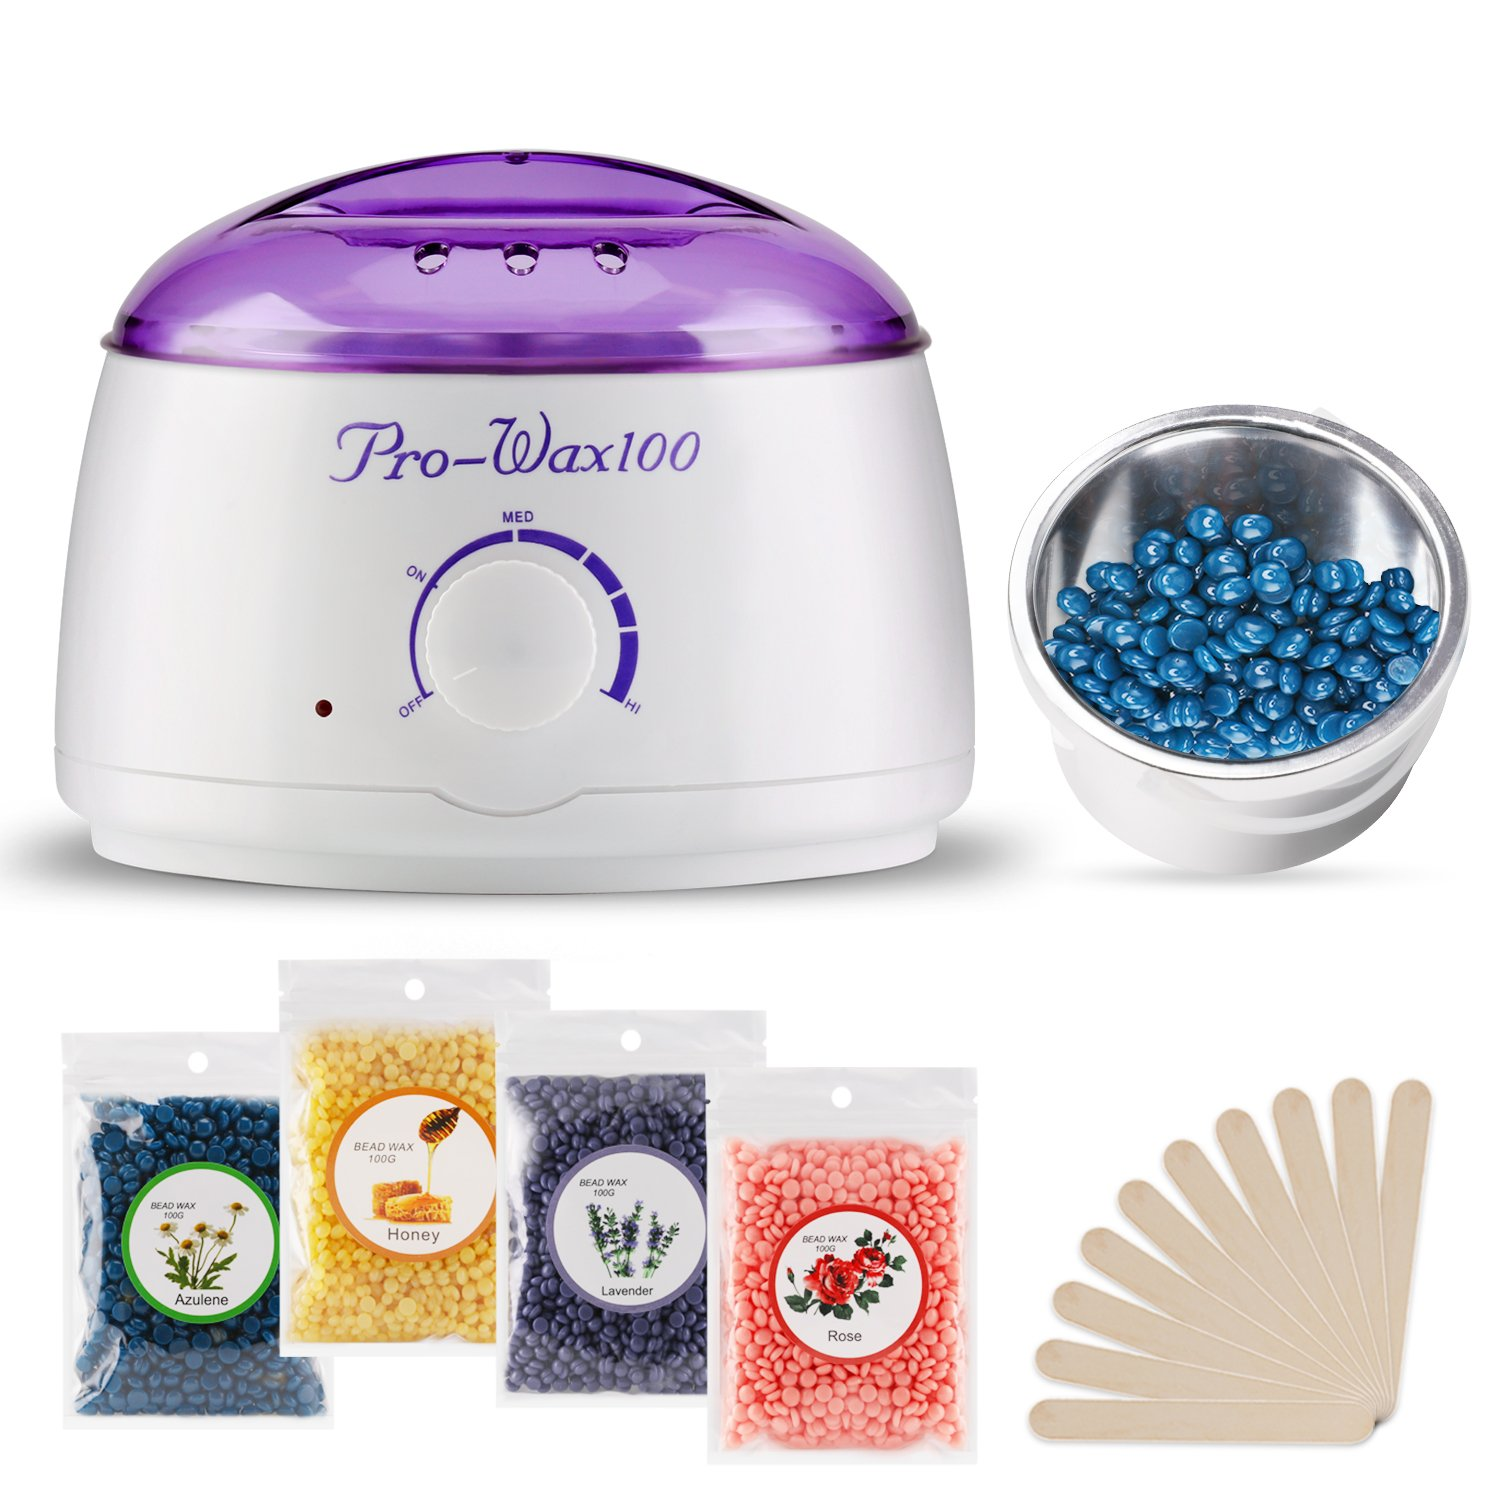 Cheap Hot Wax Hair Removal Kit Find Hot Wax Hair Removal Kit